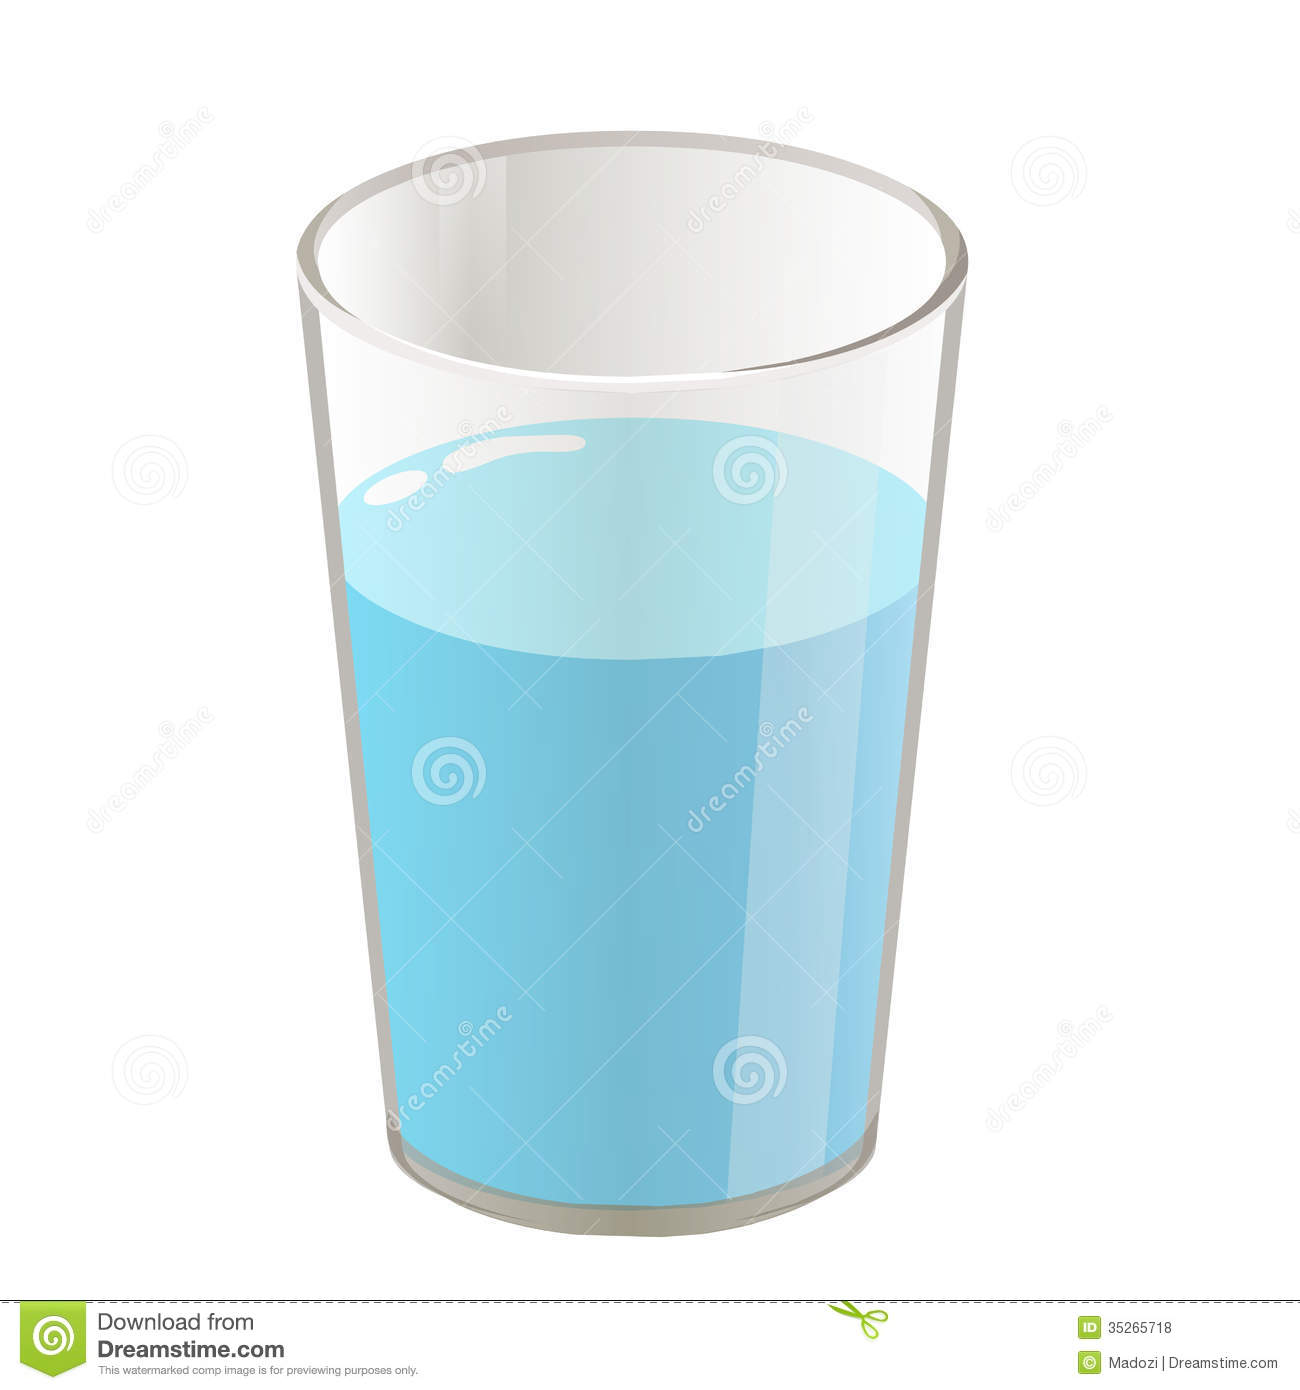 681 Glass Of Water free clipart.